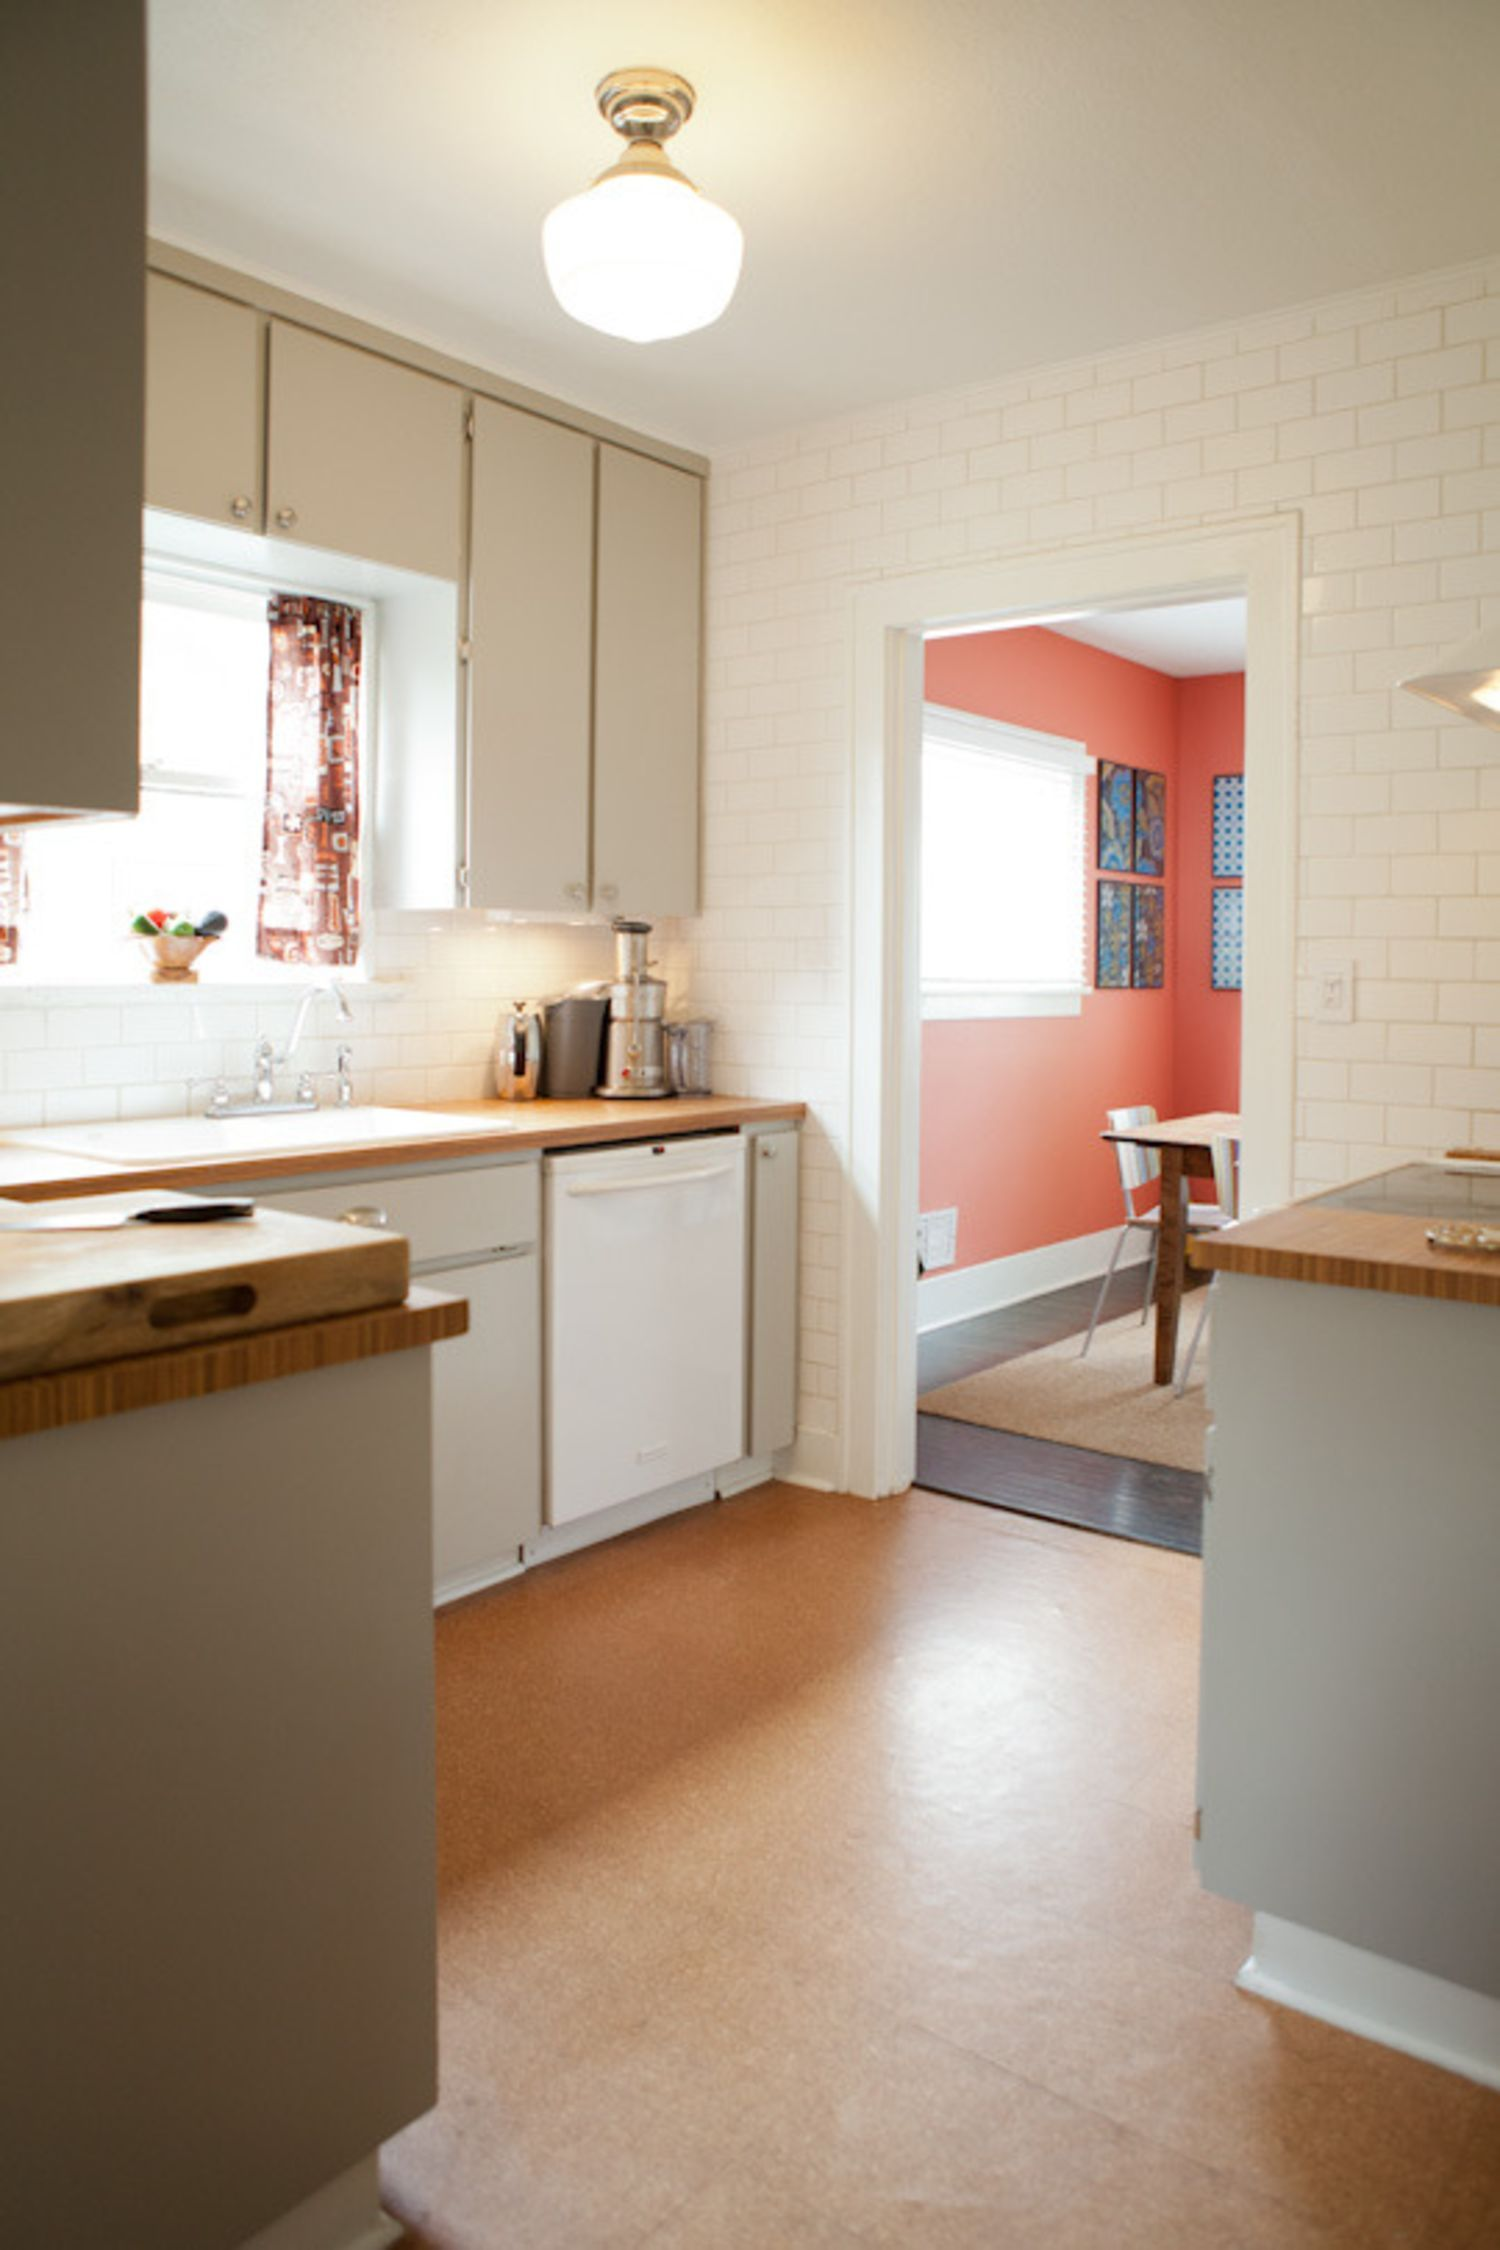 How Much Does It Cost To Install Kitchen in 2020